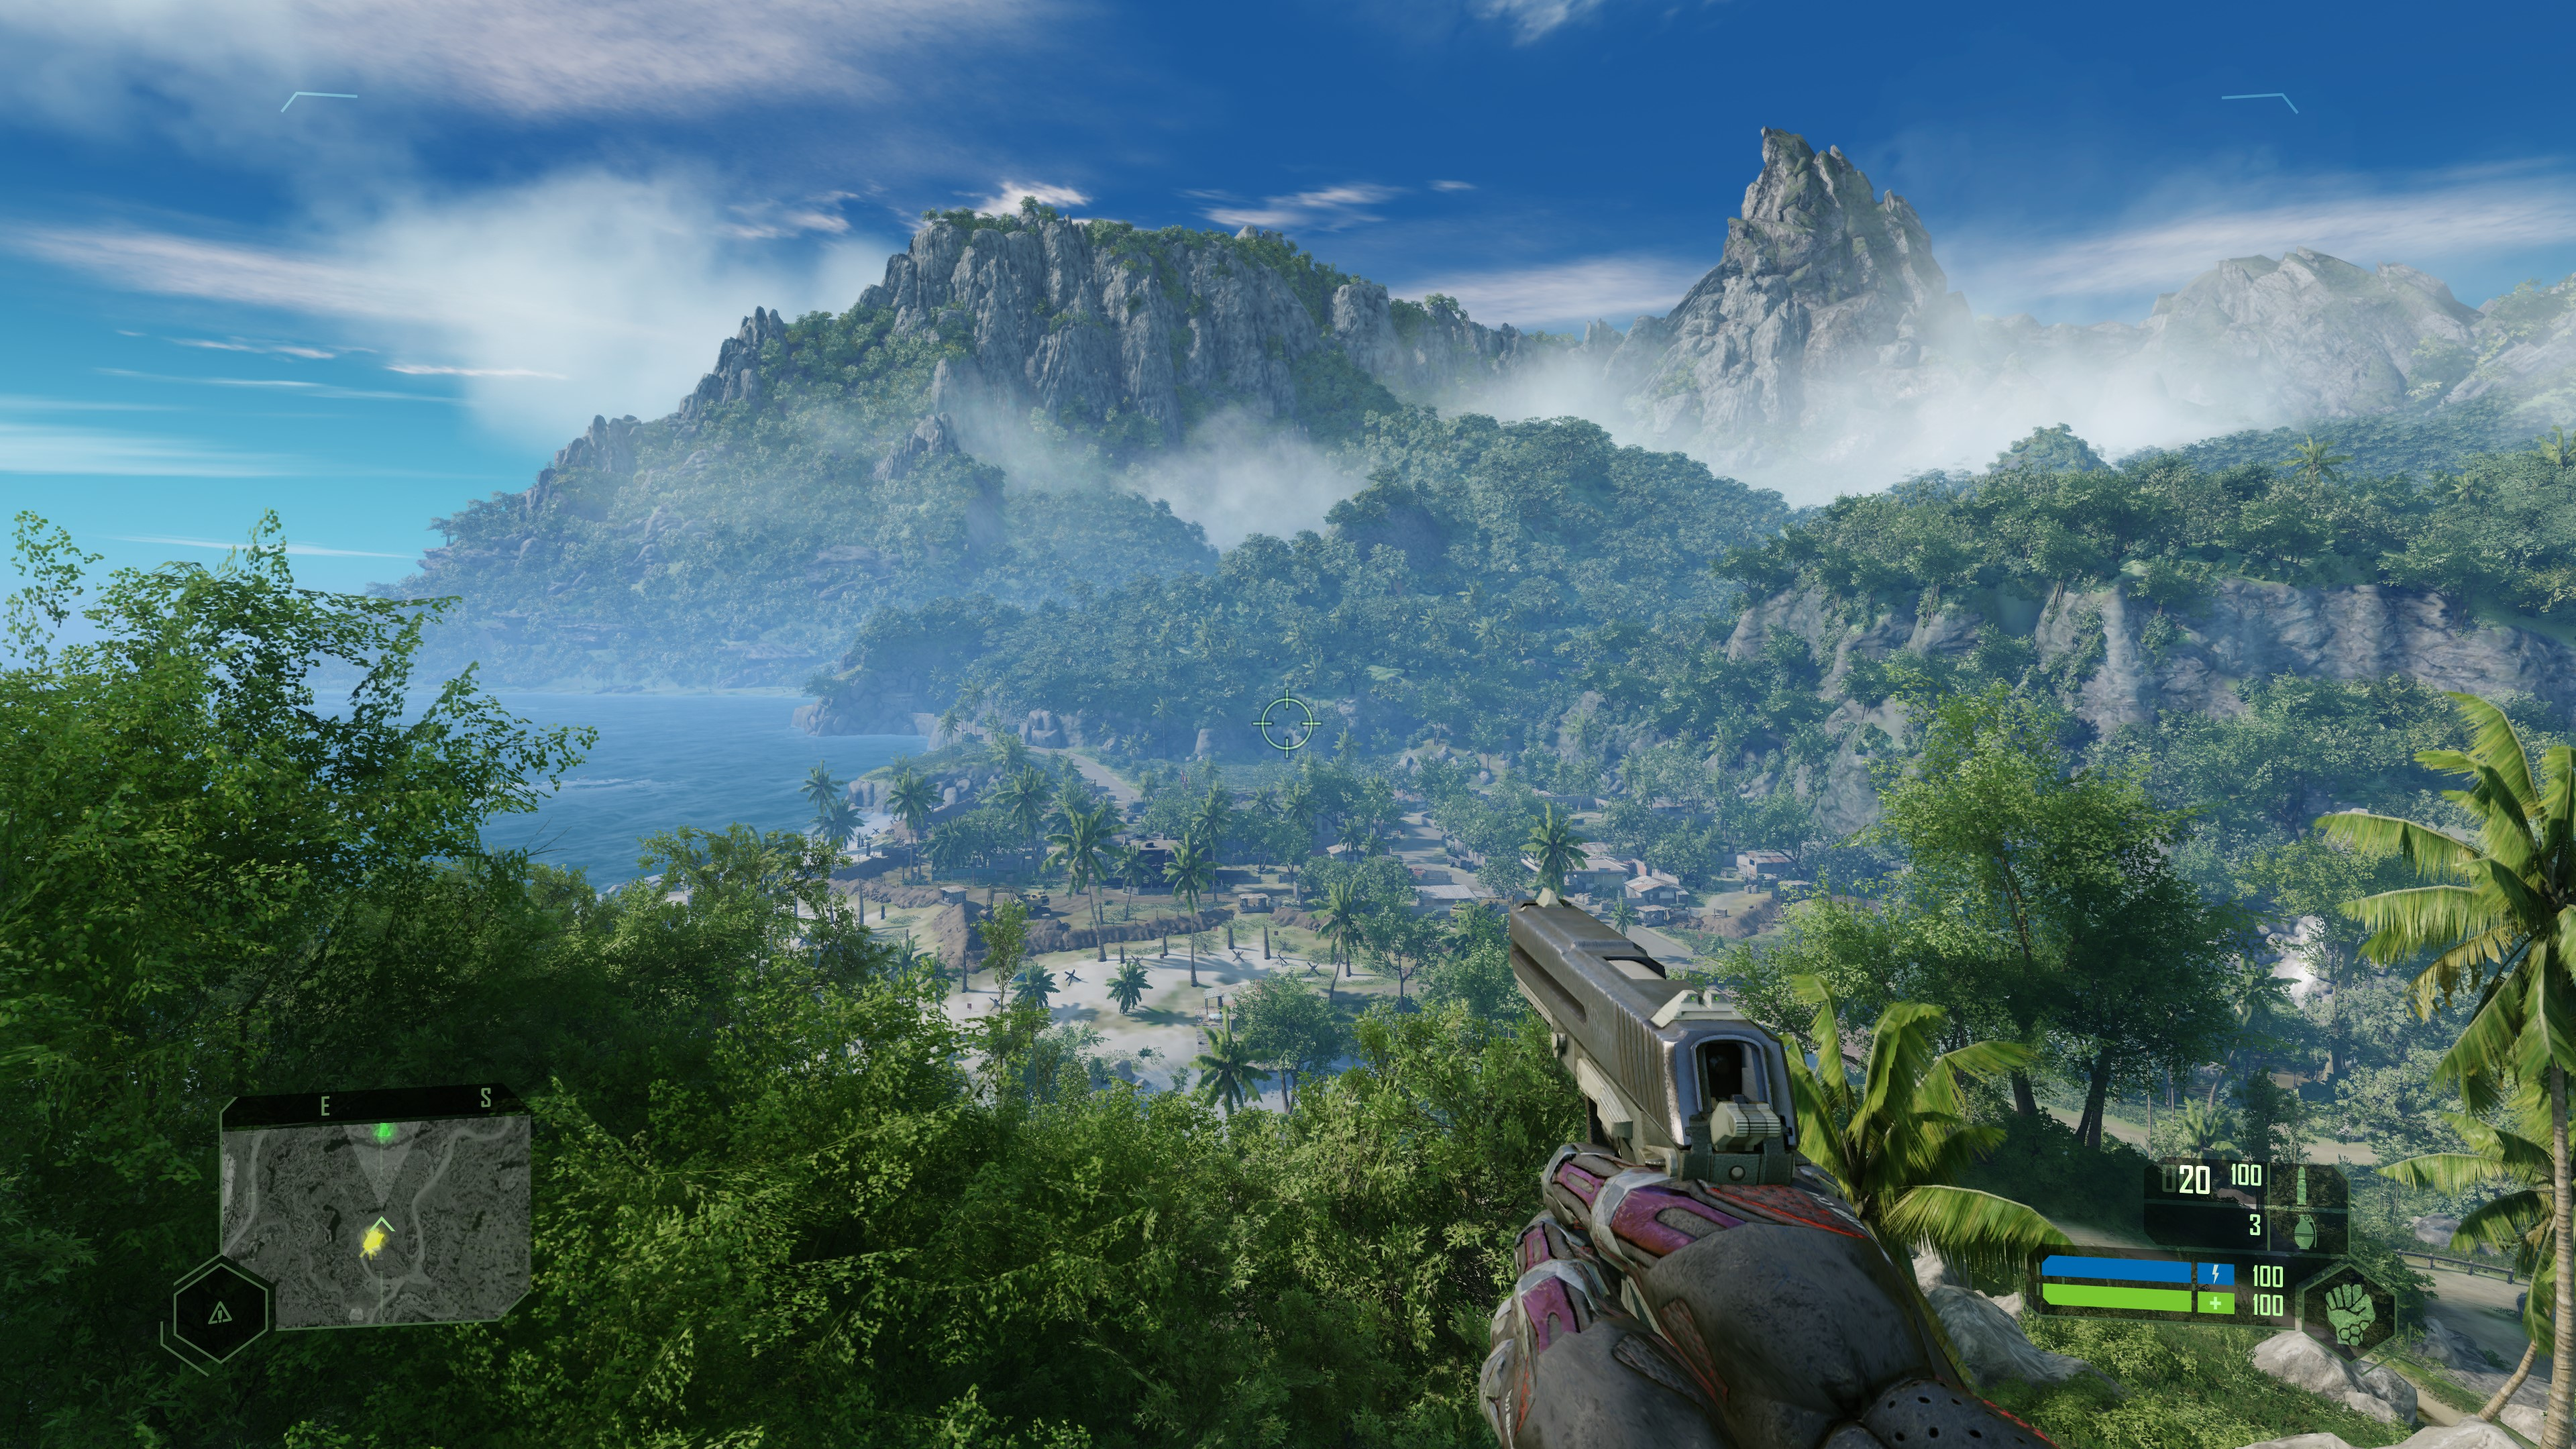 Crysis Remastered's highest graphics setting is called 'Can it run Crysis?'